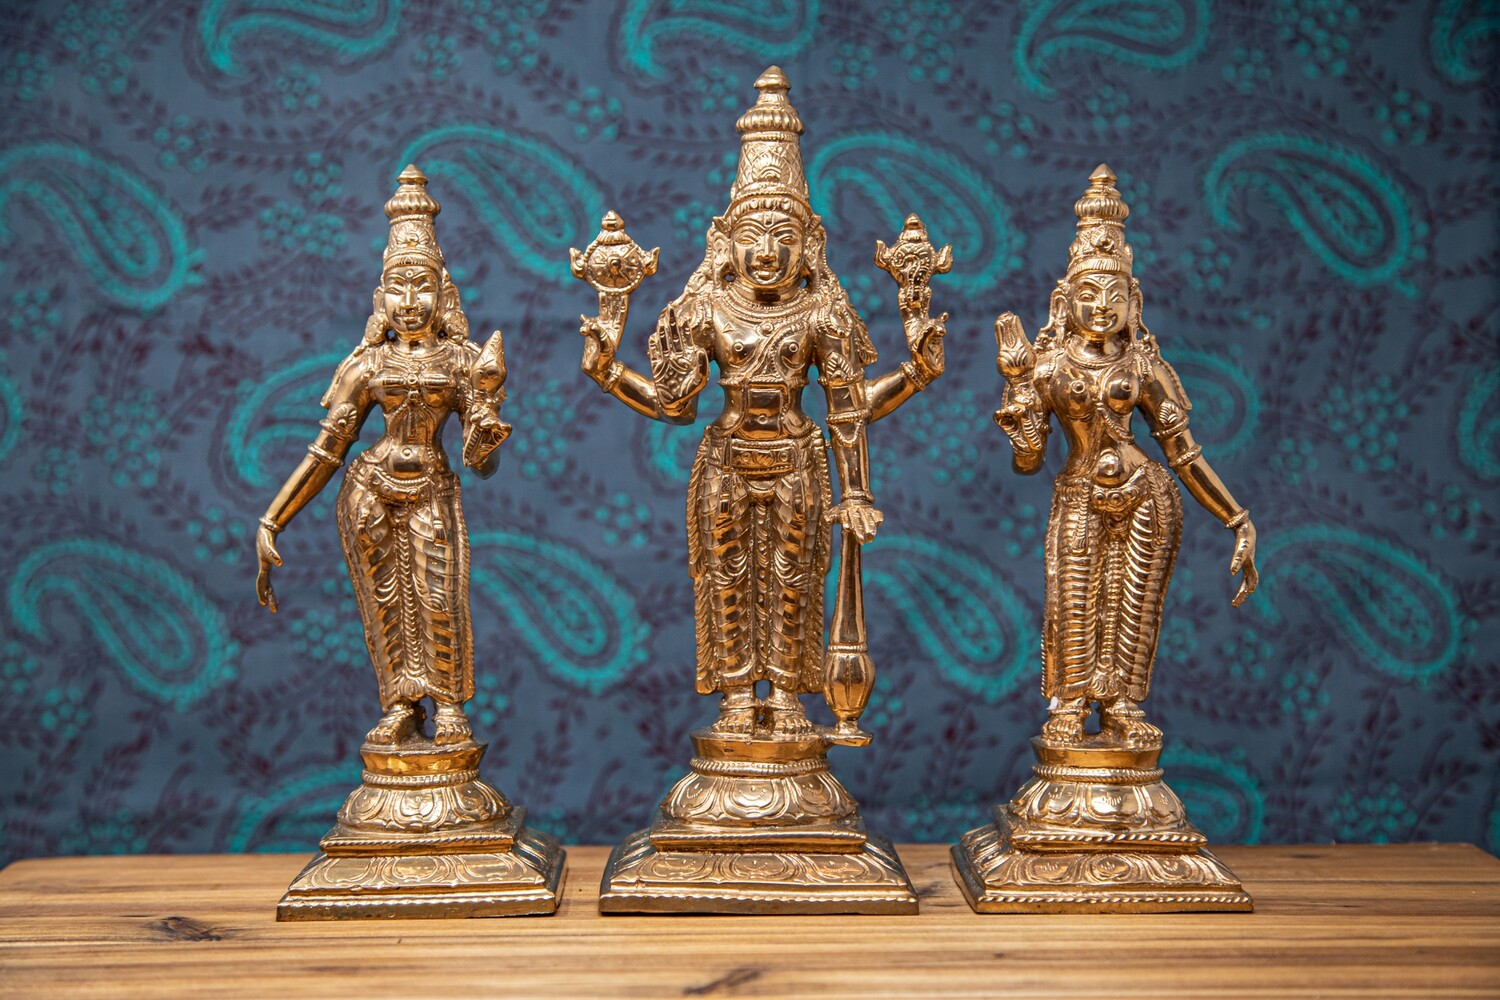 Sri Perumal With Sri Devi & Bhu Devi Set - panchaloha